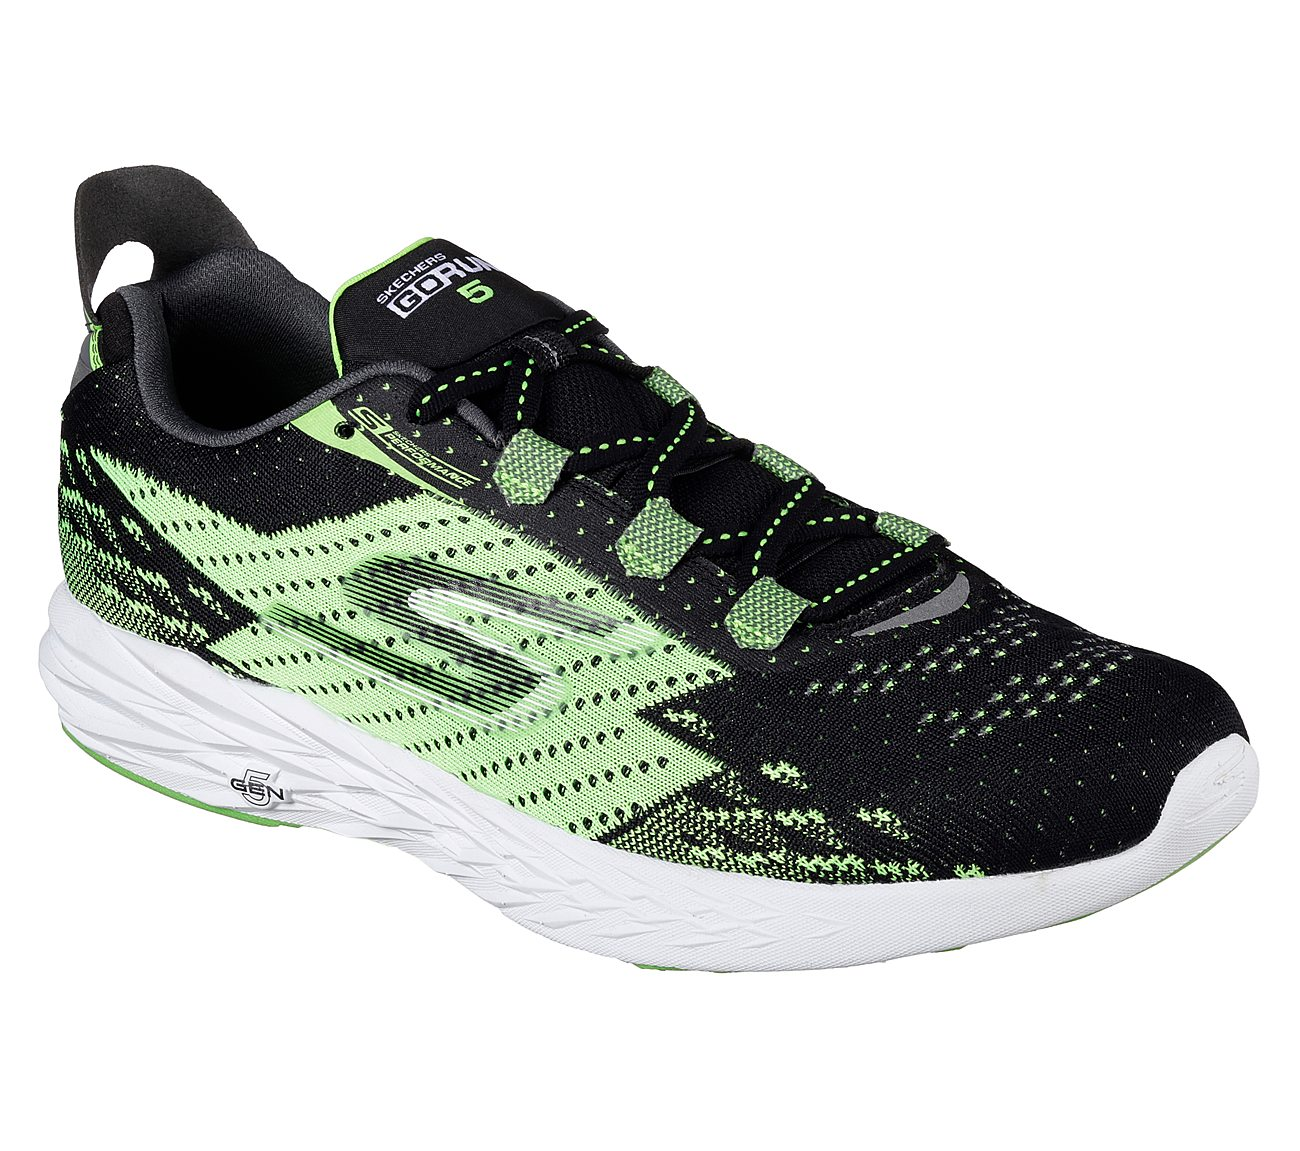 New Skechers Sneakers GORUN 5